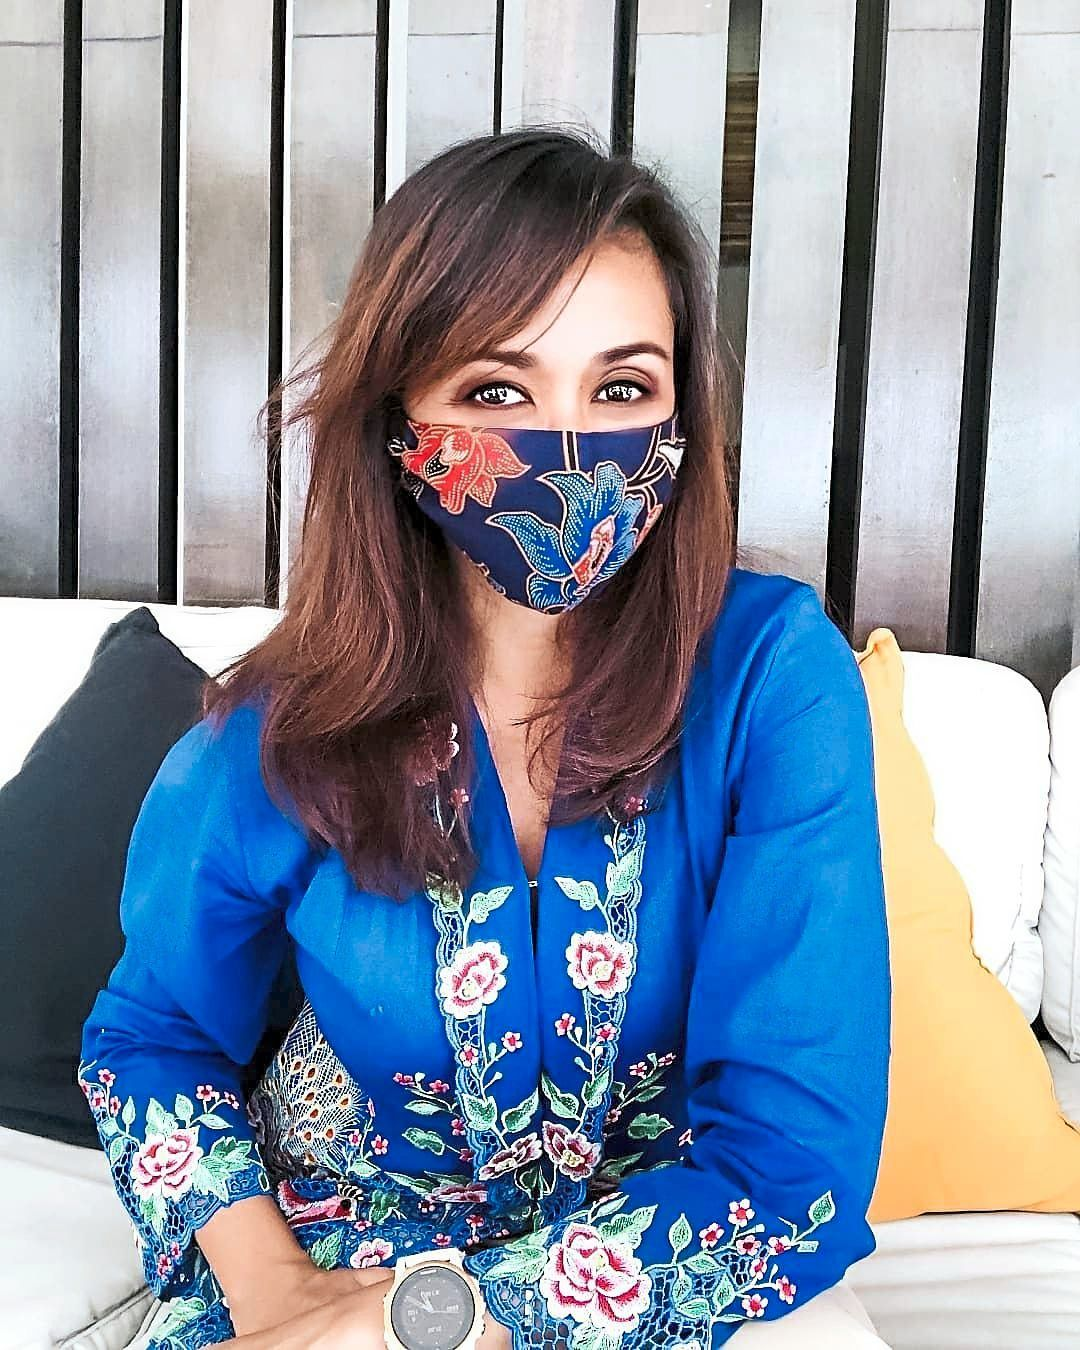 Tengku Zatashah, sporting a face mask made by KTJ, has been very supportive of the social enterprise's work. Photo: Tengku Zatashah Sultan Sharafuddin Idris Shah